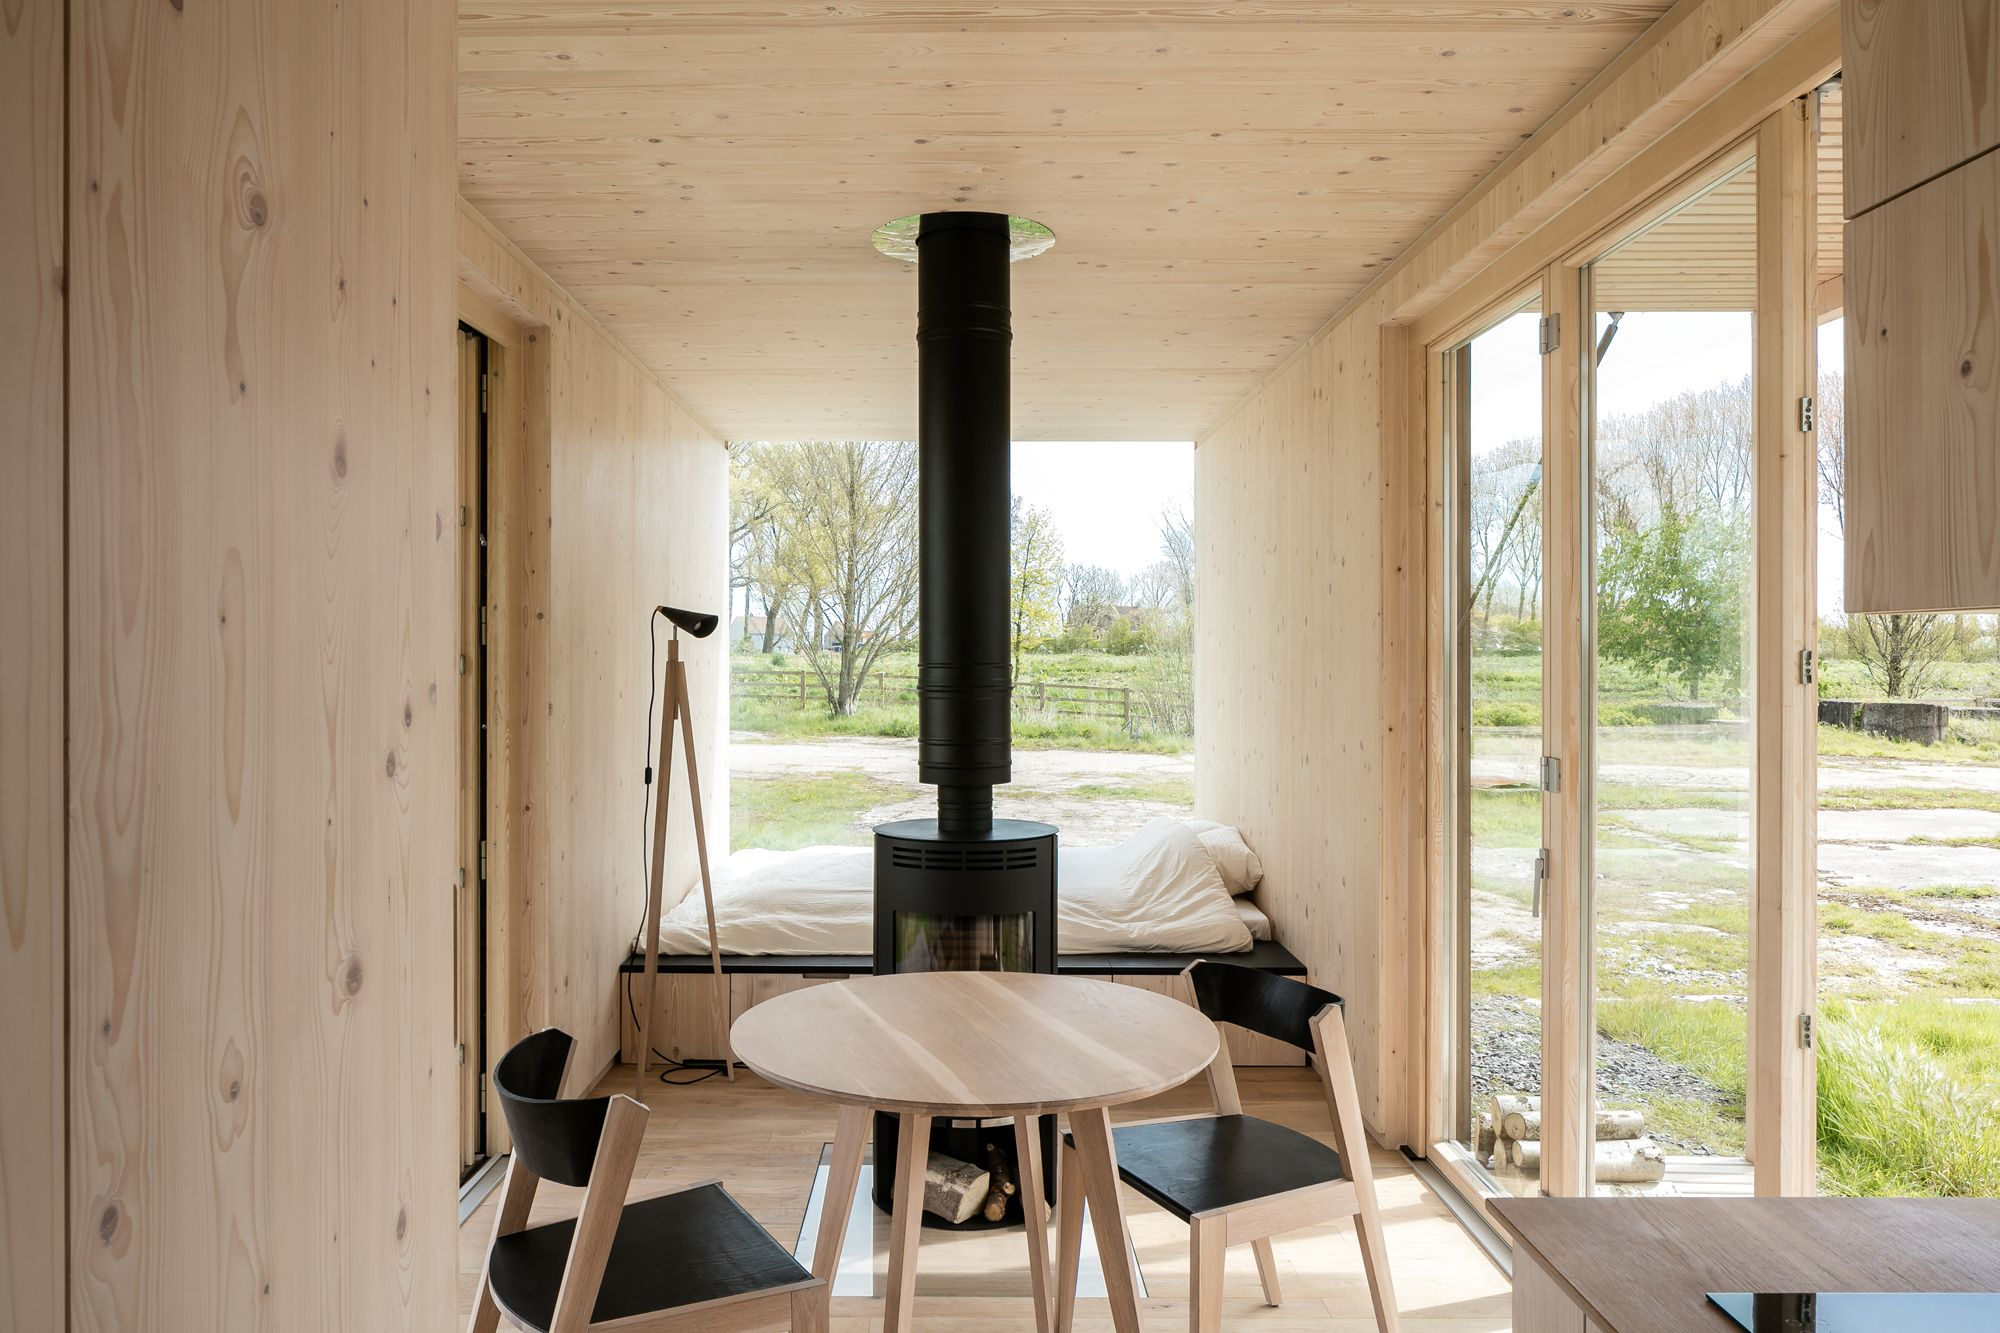 Ark shelter de backer senkowski and mikov k zahrada for Holzhaus kleinhaus